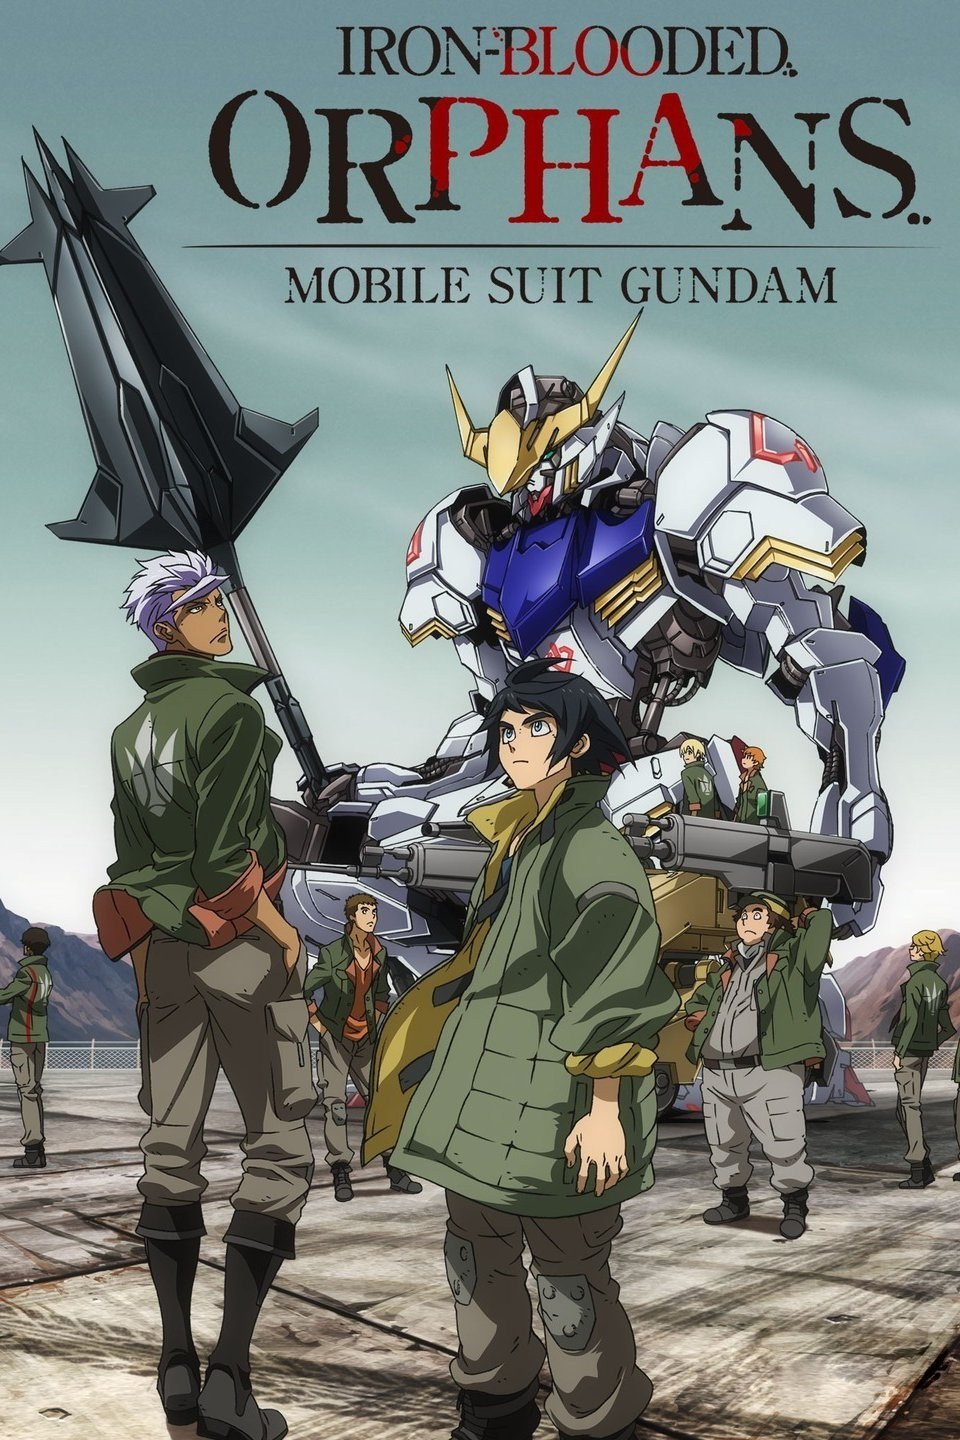 Mobile suit gundam - iron-blooded orphans